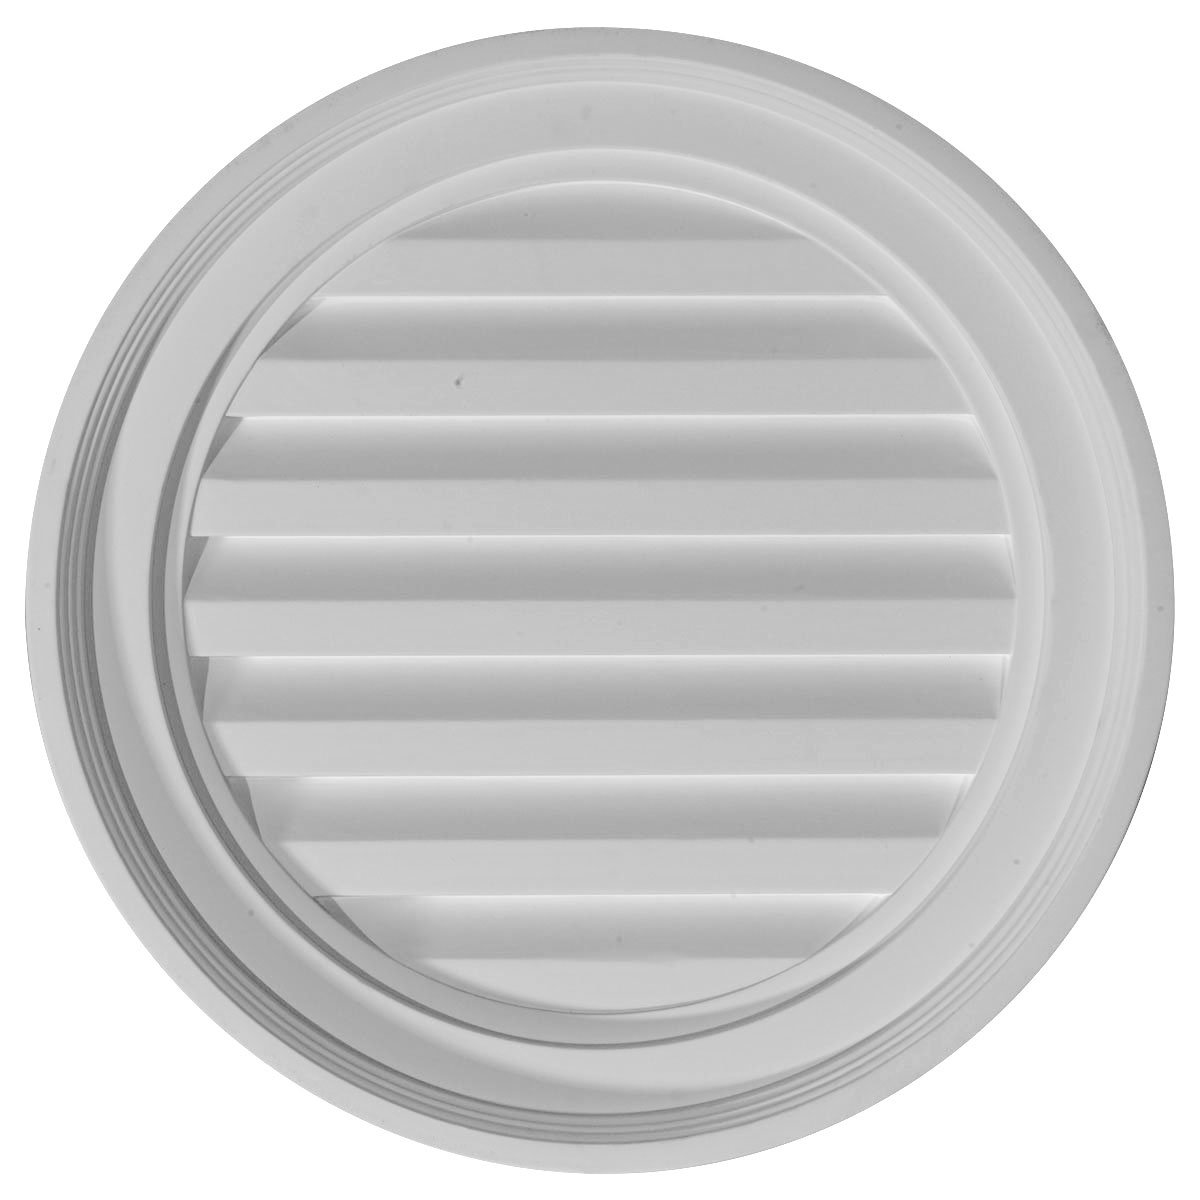 Ekena Millwork GVRO18F 18-Inch W x 18-Inch H x 1 1/8-Inch P Round Gable Vent Louver, Functional